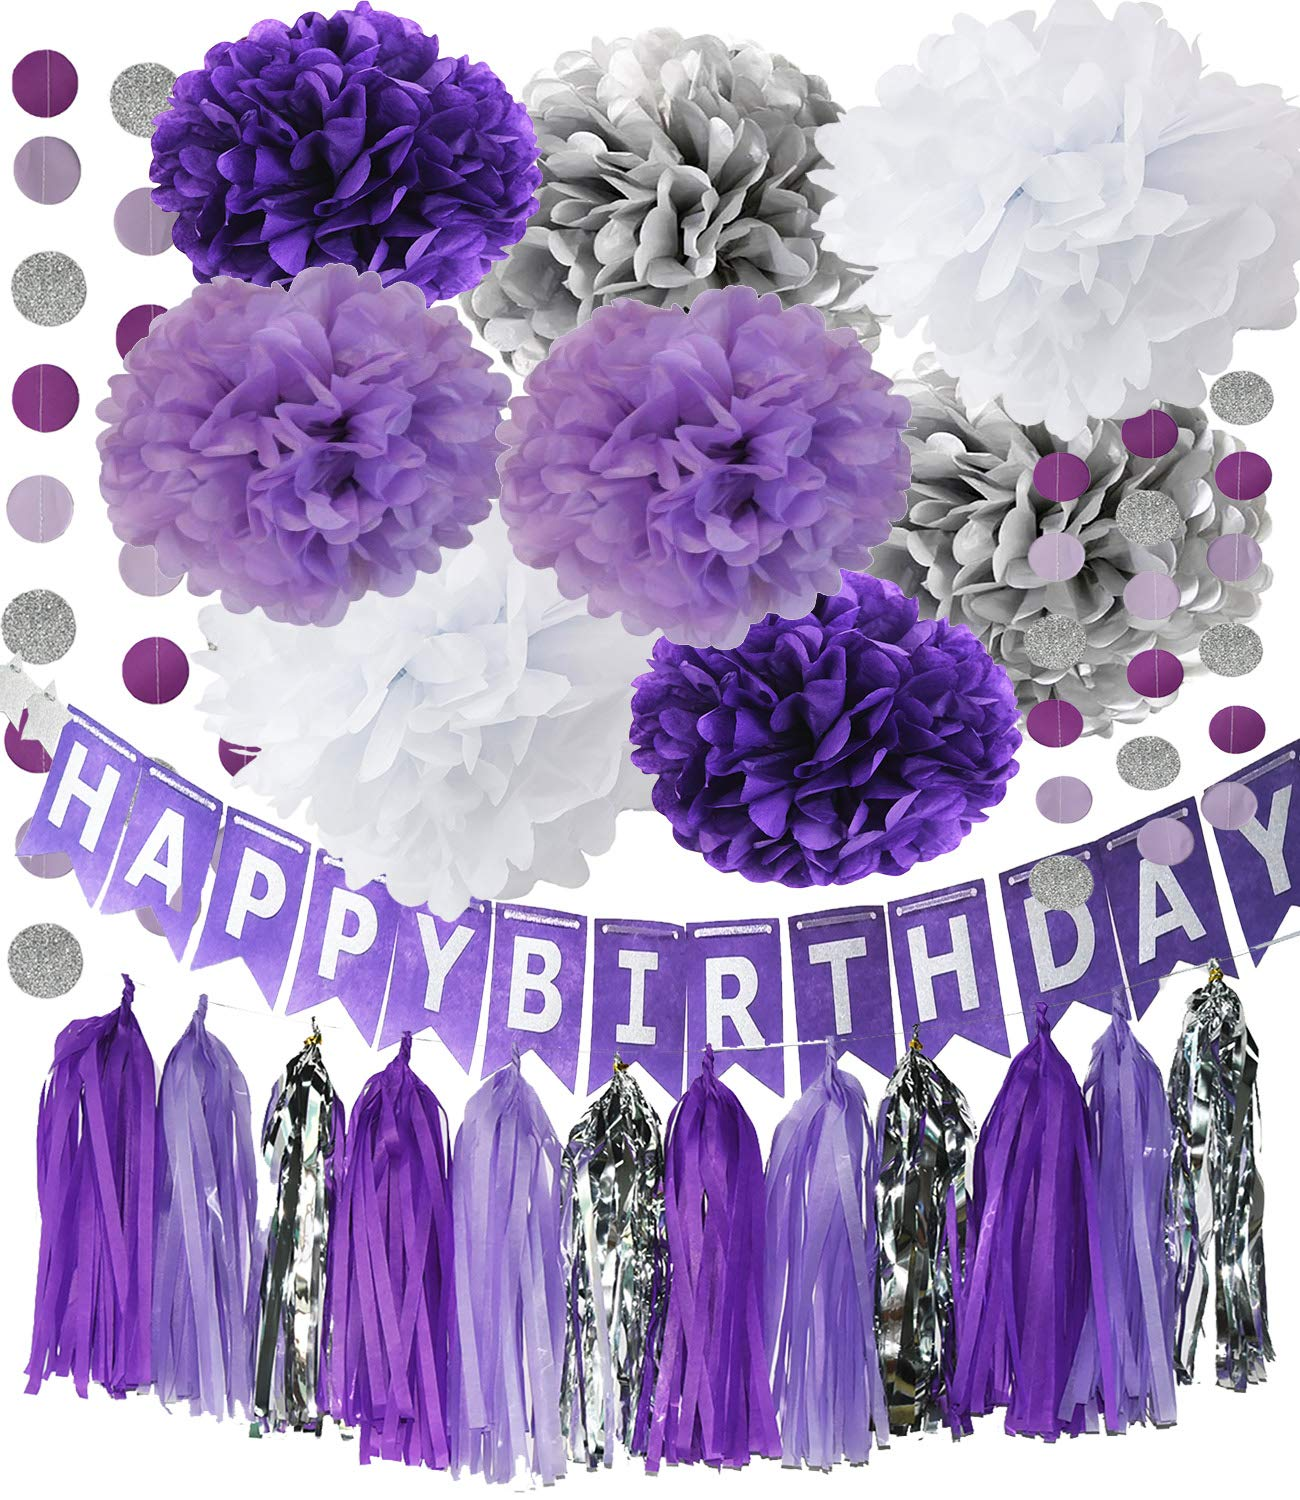 Purple Silver Party Decorations Tissue Pom Pom Happy Birthday Banner Purple Silver Circle Paper Garland for Birthday Party Decorations/Purple Silver First Birthday Party Supplies by Qian's Party